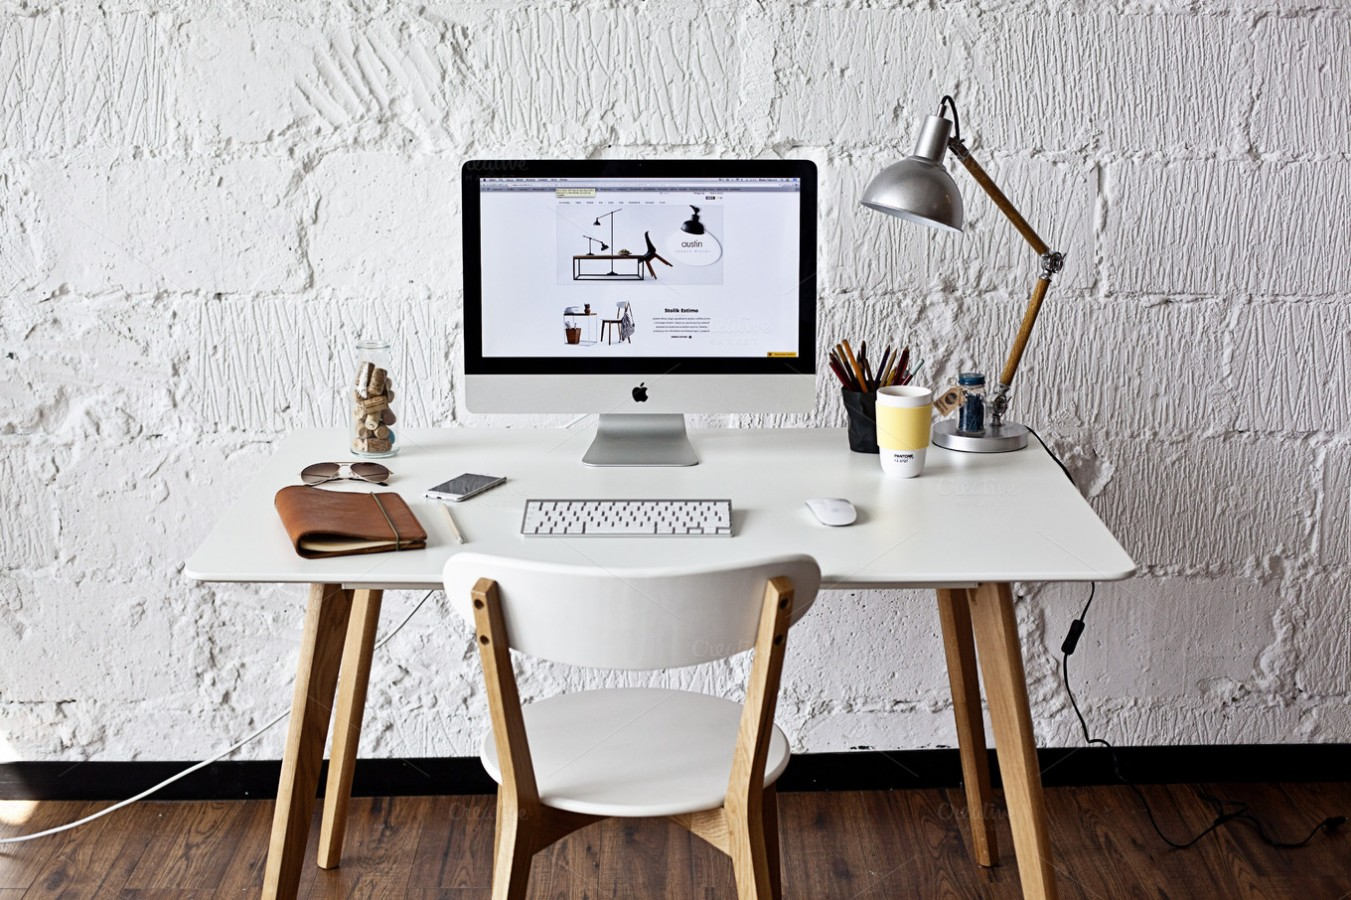 3 STEPS TO A PERFECT WORKSPACE